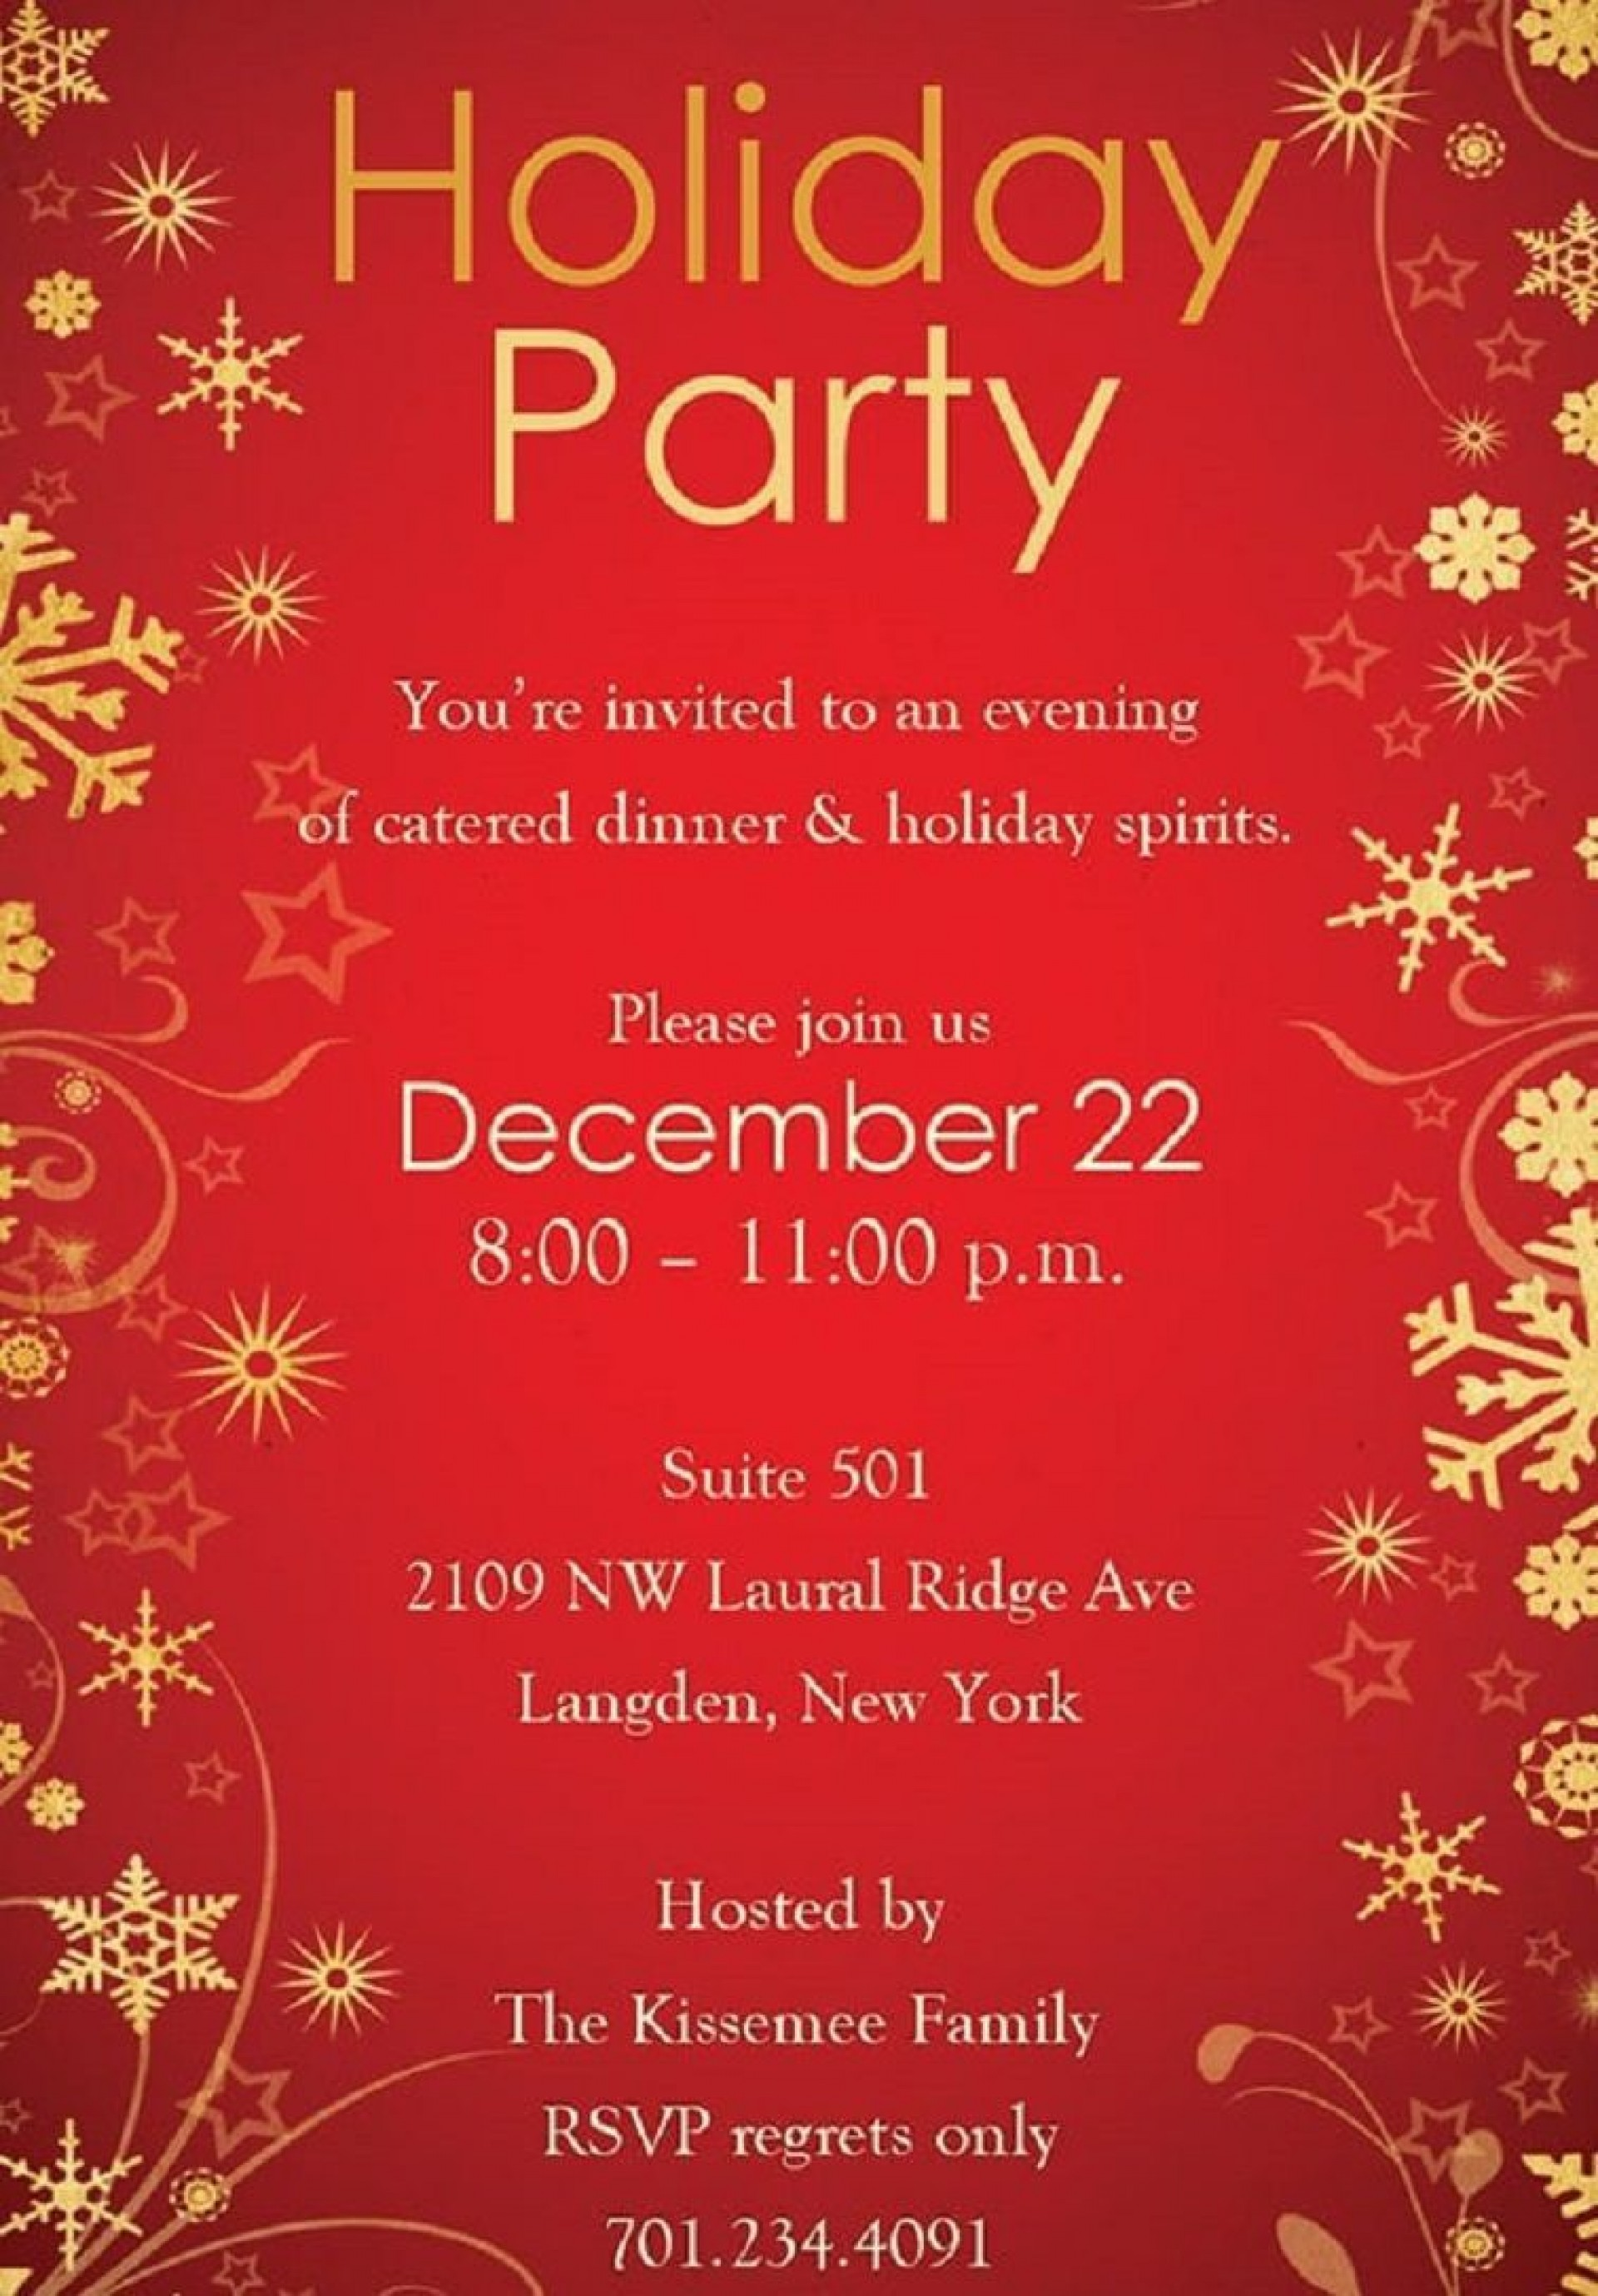 000 Excellent Free Holiday Party Invitation Template Design  Templates Printable Downloadable Christma Online1920